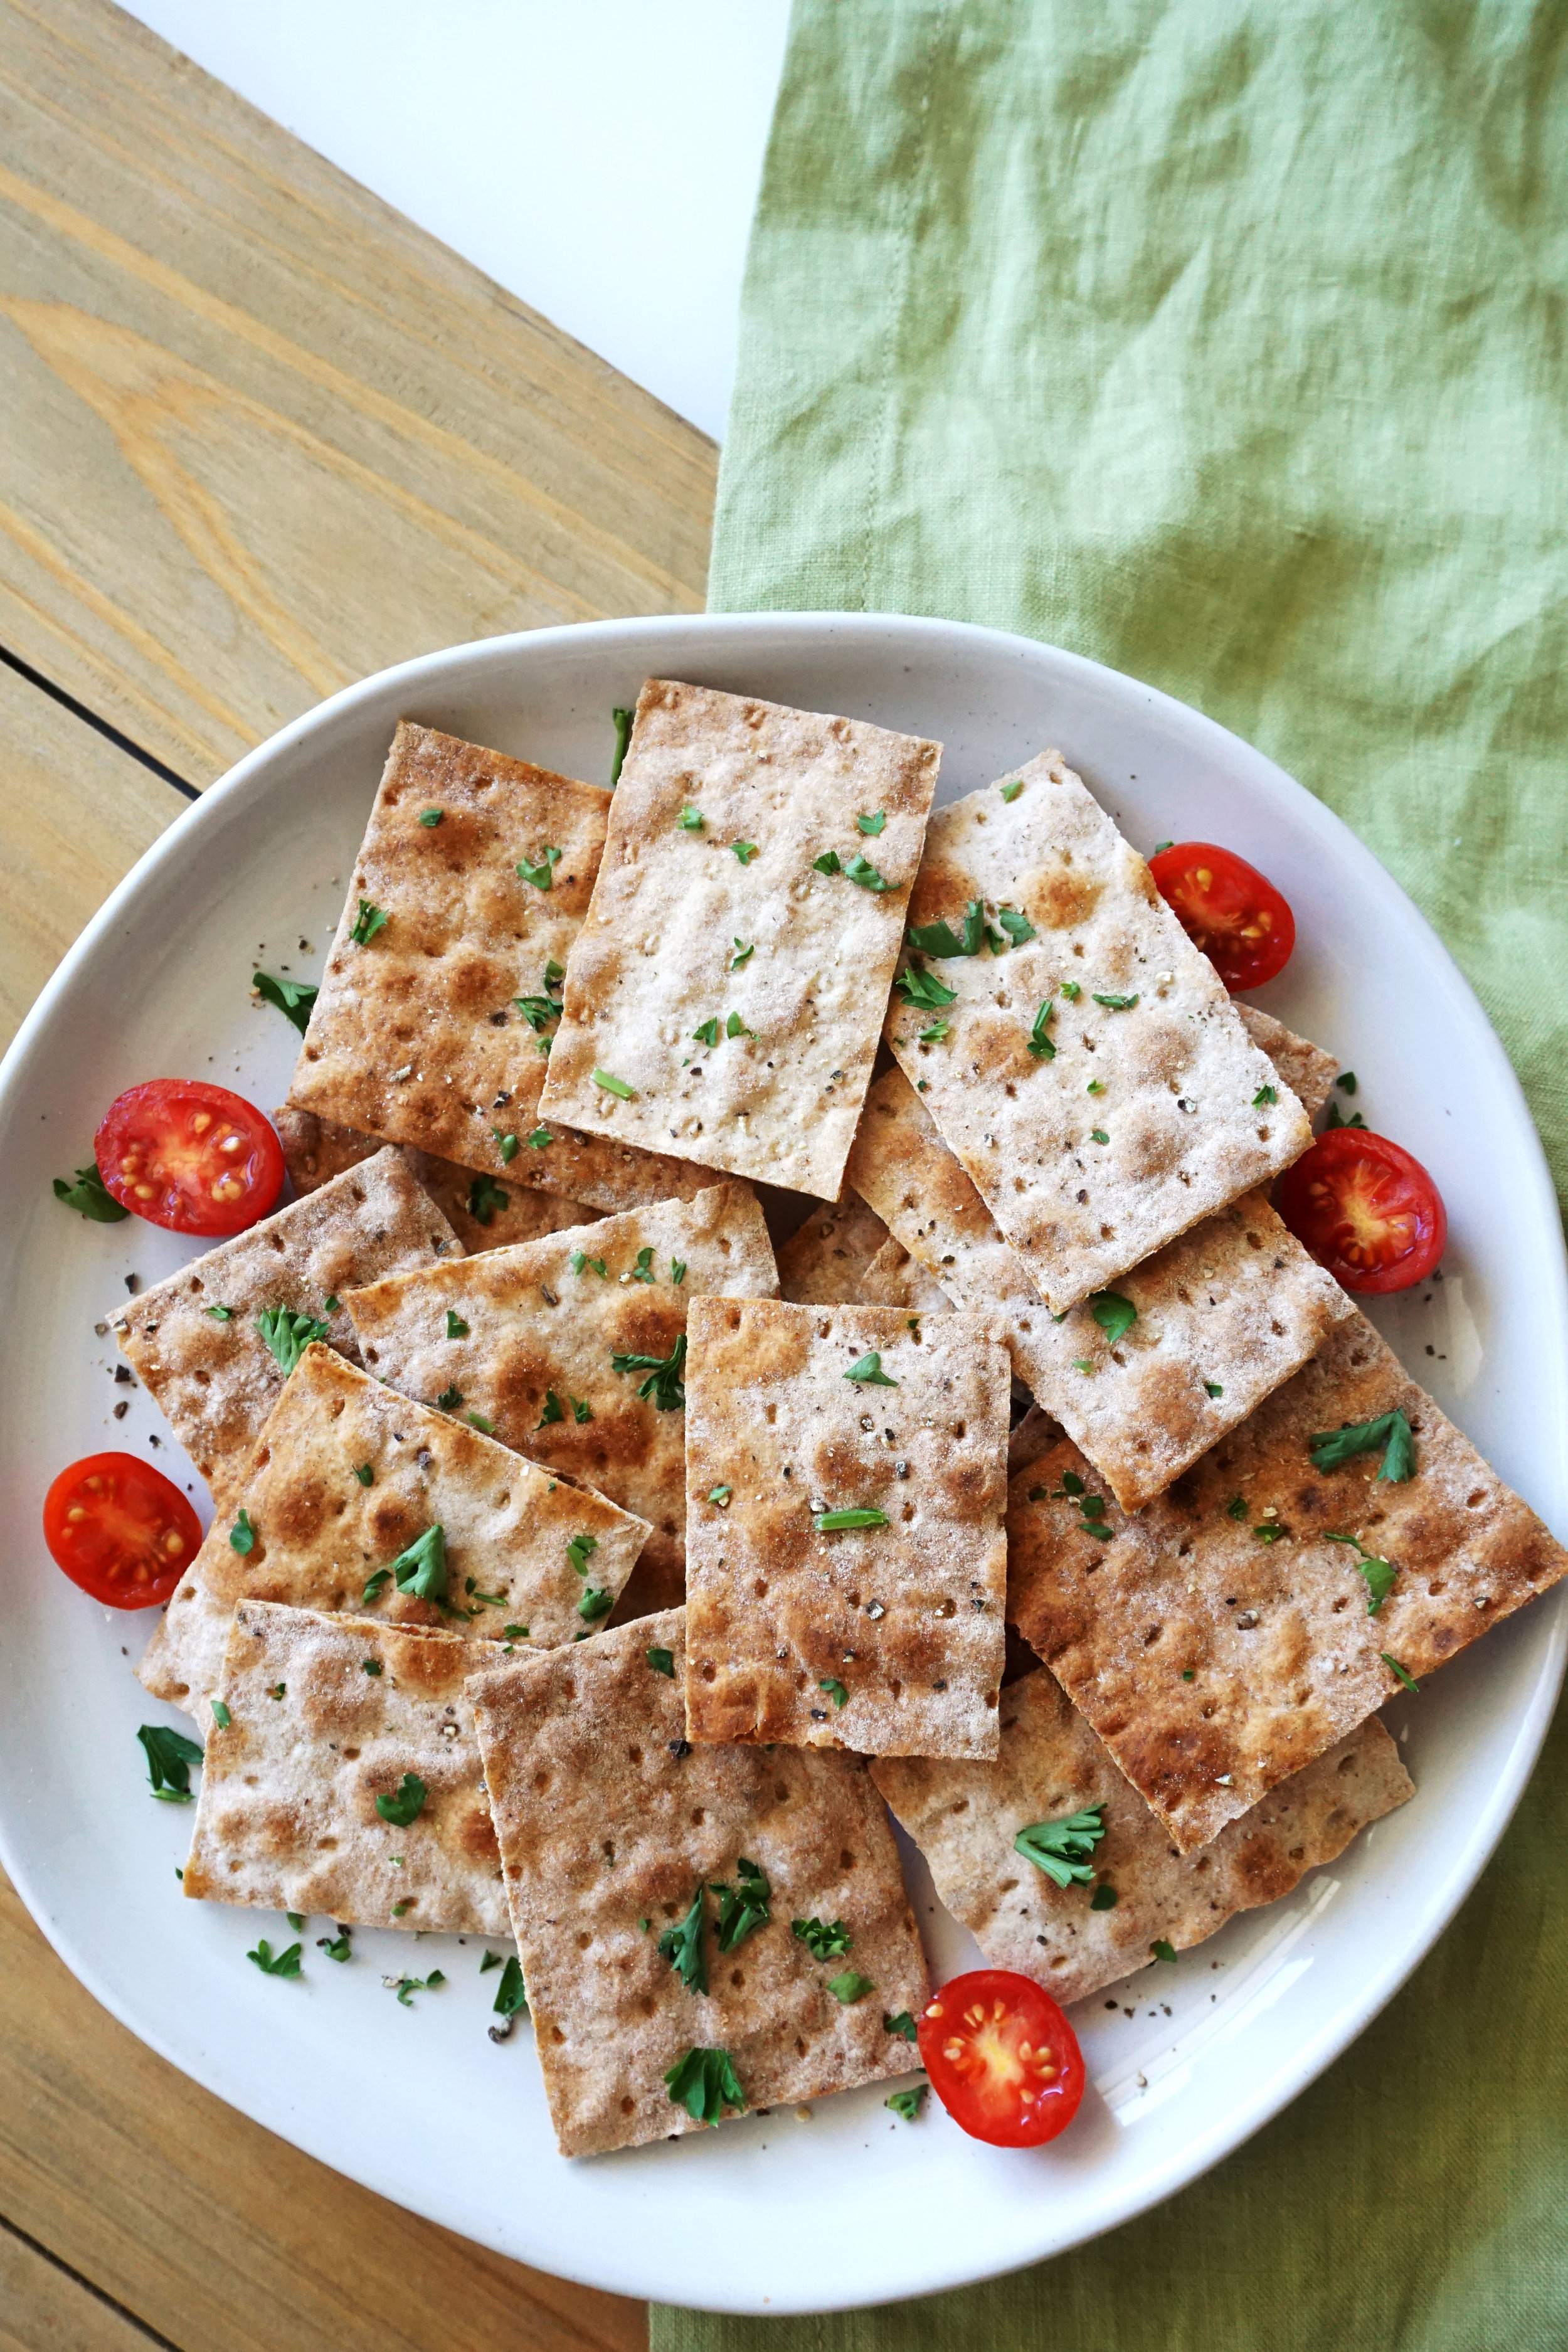 Baked Whole-Grain Lavash Chips and Mediterranean Dip (Vegan)